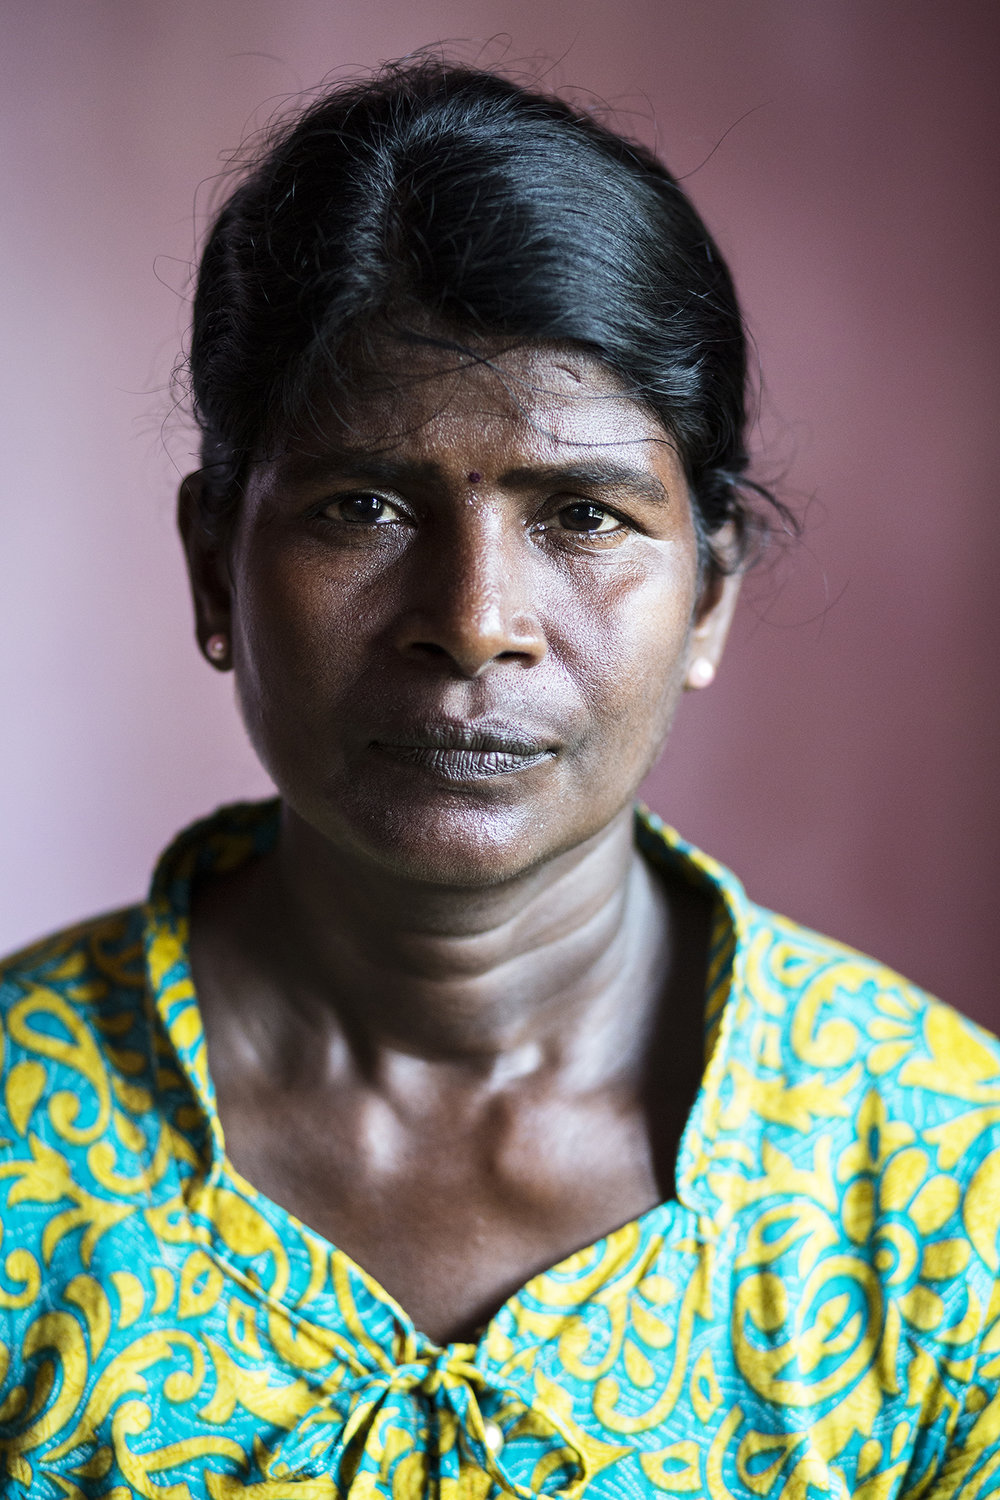 Iruthayarani fears the presence of the Sri Lankan army, and recounts experiences of soldiers following her in daylight and threatening her and her son.  There are tens of thousands of women who have been widowed by the war, making them more vulnerable to abuse from the military.